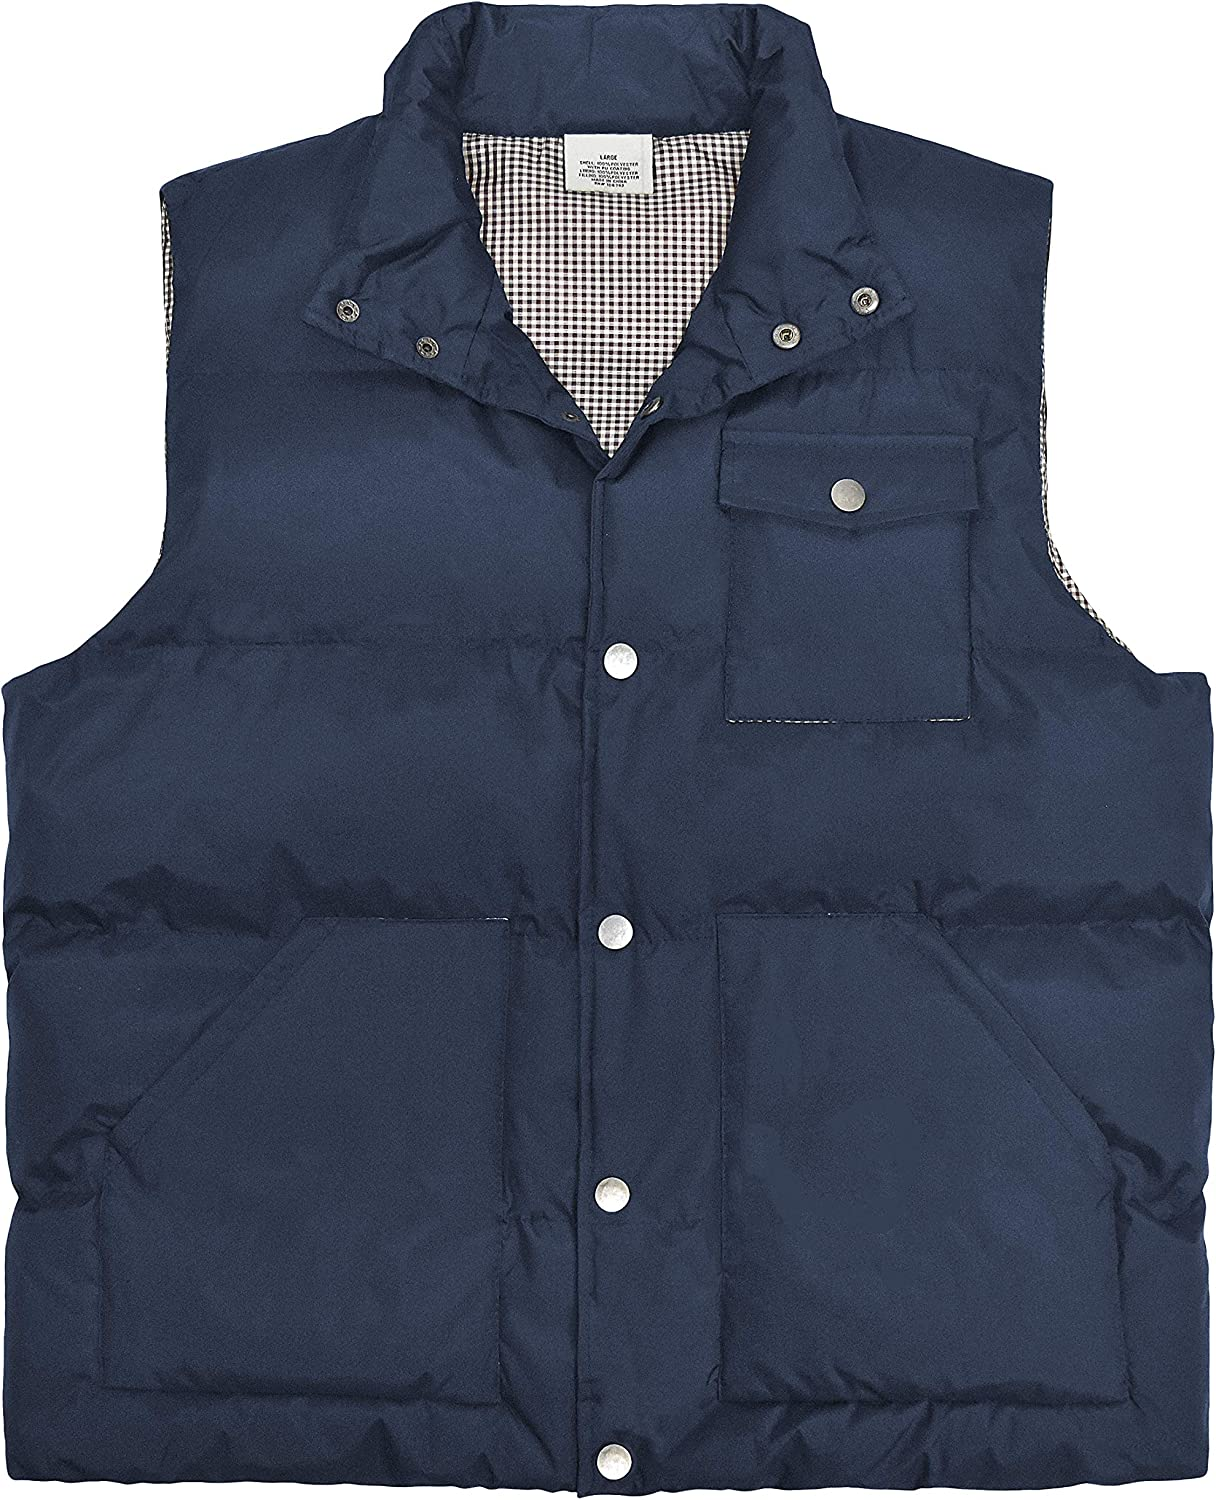 Victory Outfitters Men's Snap Front Quilted Puffer Vest with Checker Print Lining